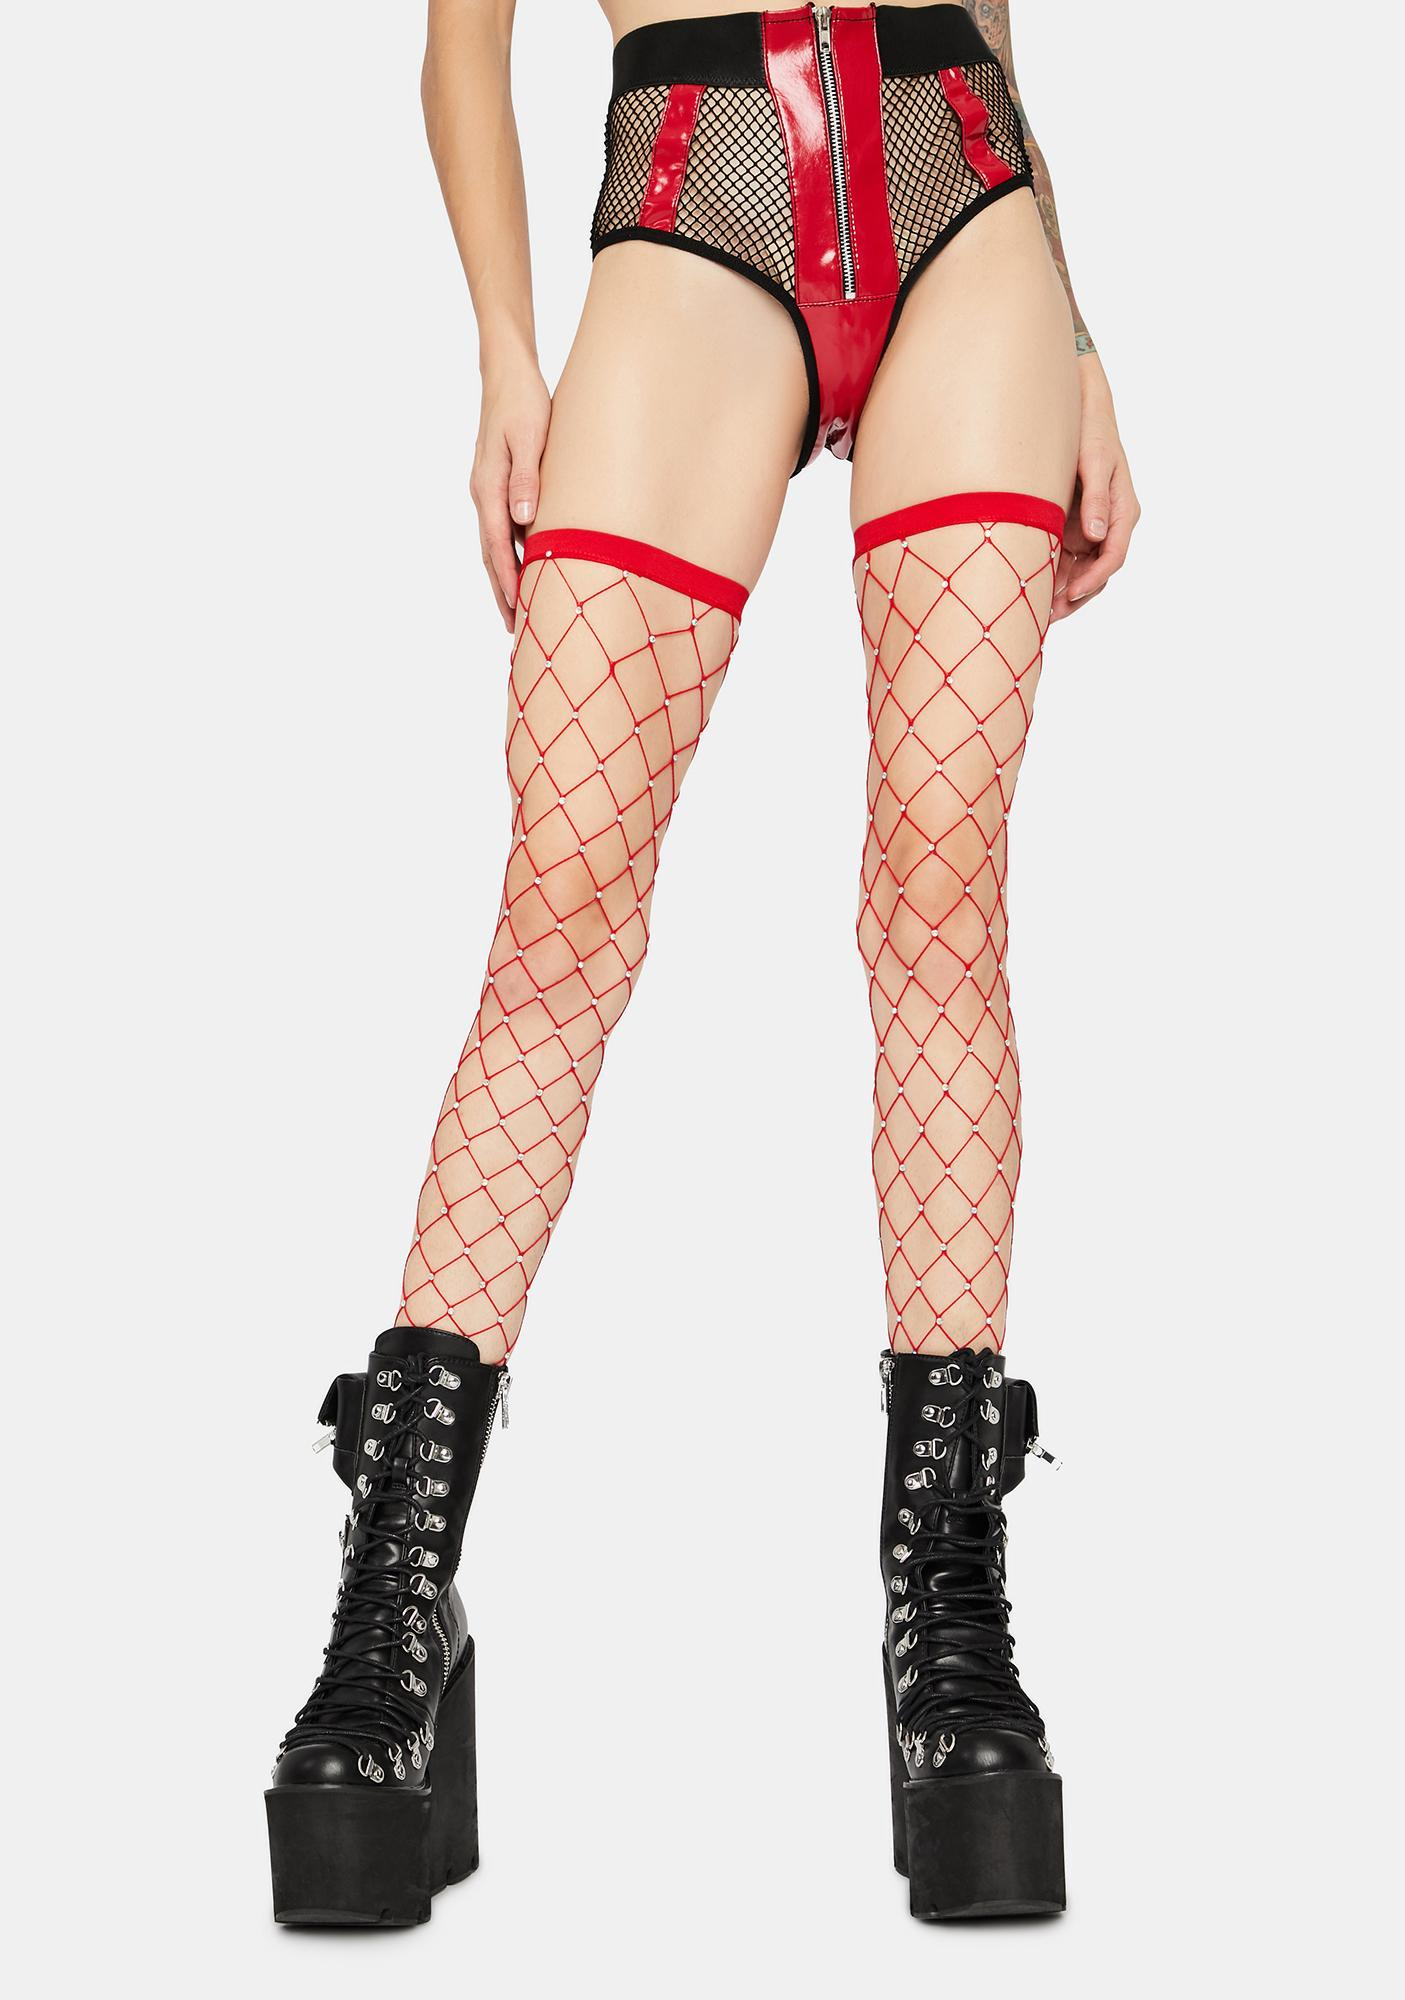 Fire Shinin' Bright Fishnet Thigh Highs